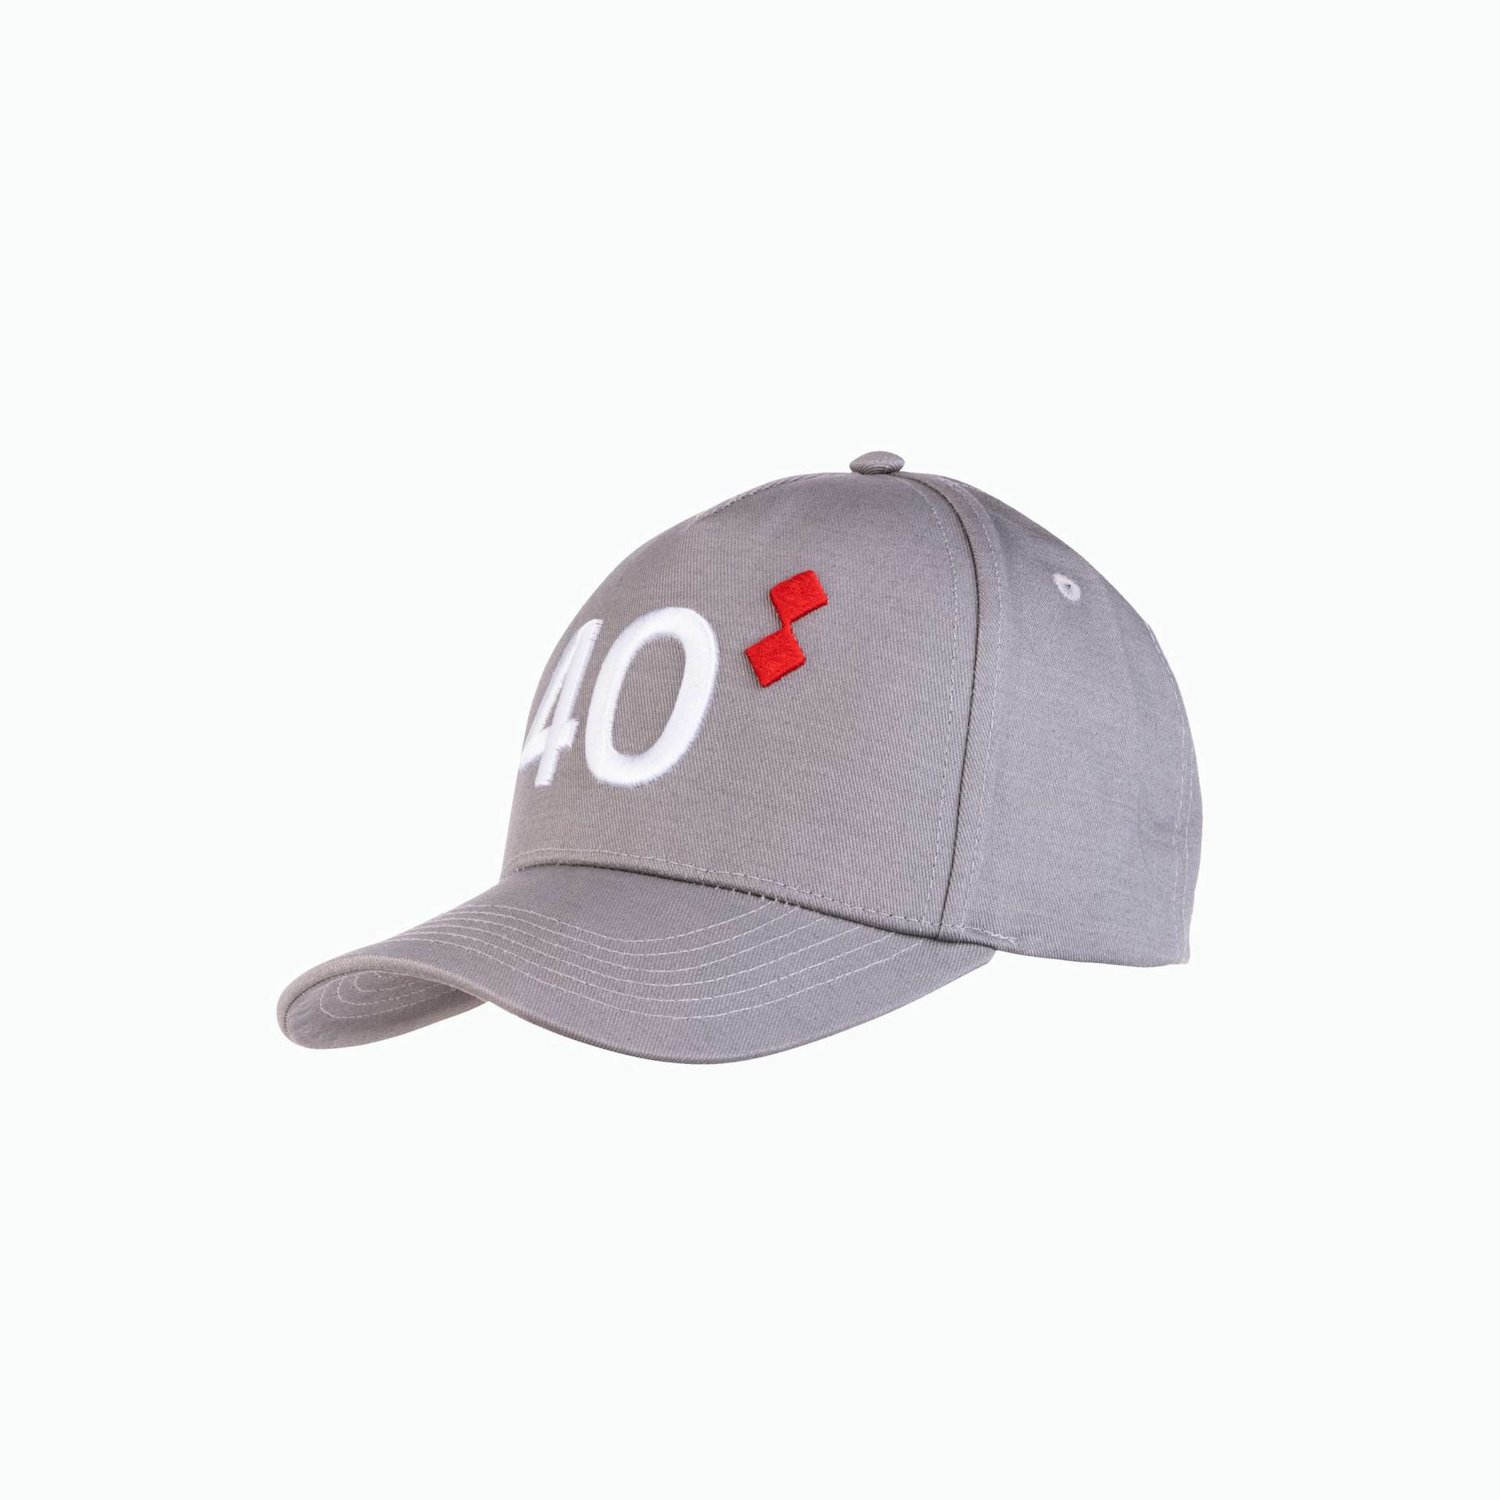 40th 1 Cap - Grey